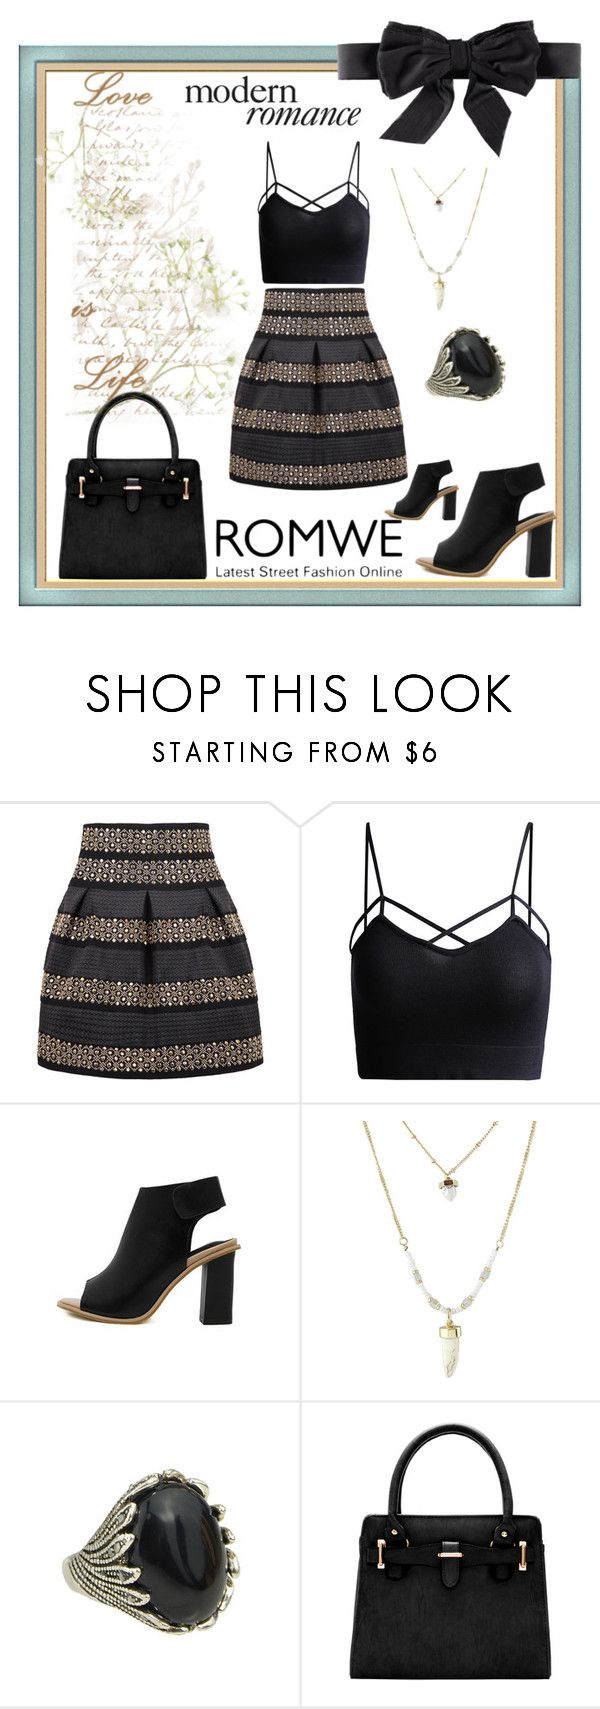 """~Modern Romance~"" by marielle80 ❤ liked on Polyvore featuring H&M, modern and romwe"